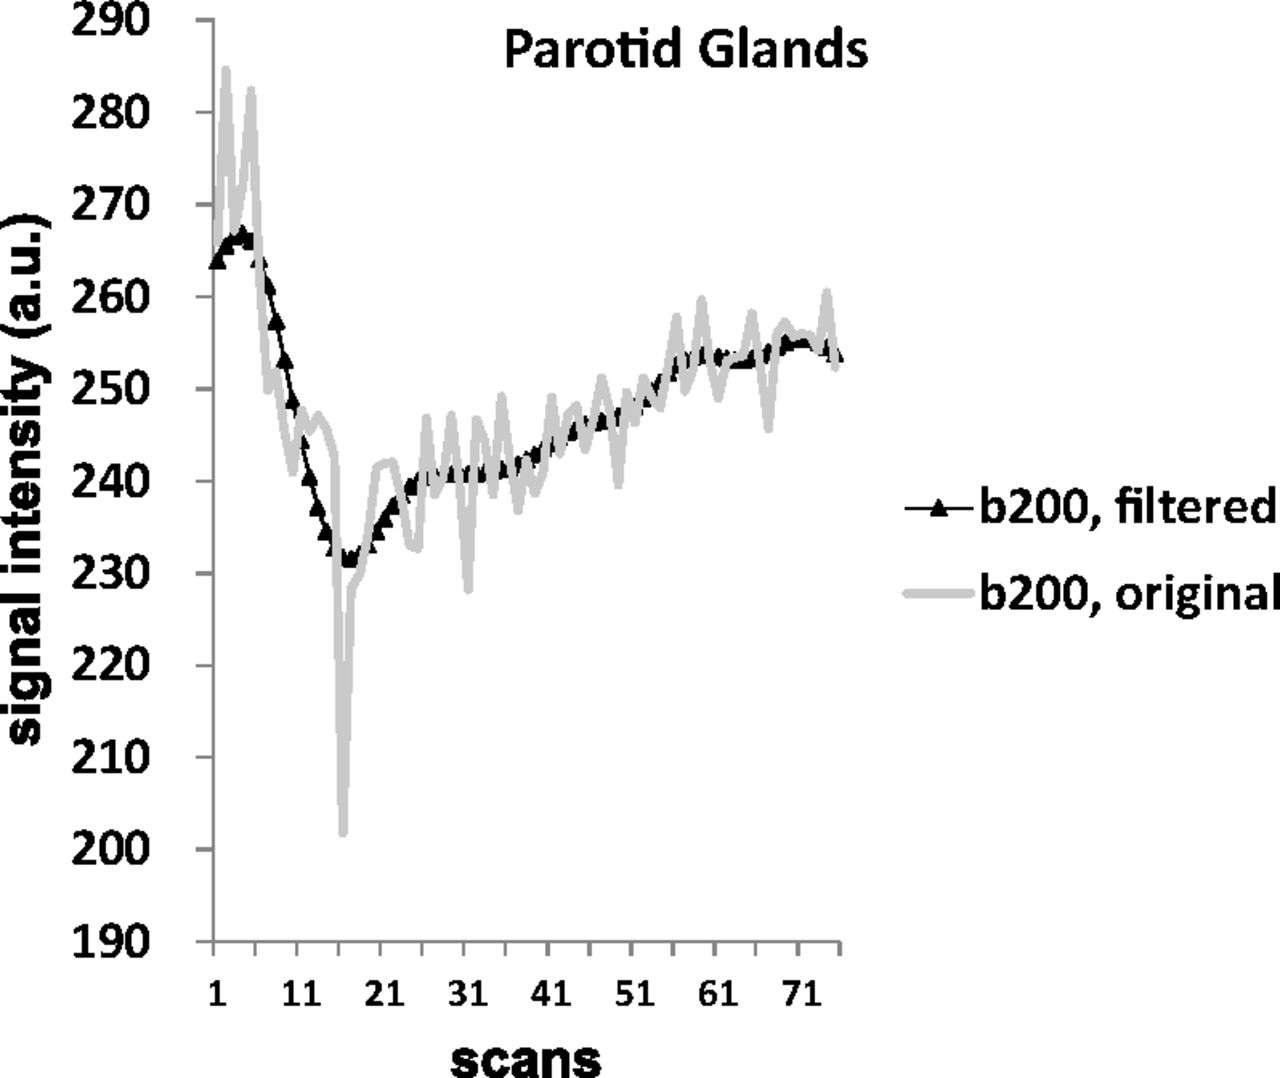 Evaluating Instantaneous Perfusion Responses Of Parotid Glands To Gustatory Stimulation Using